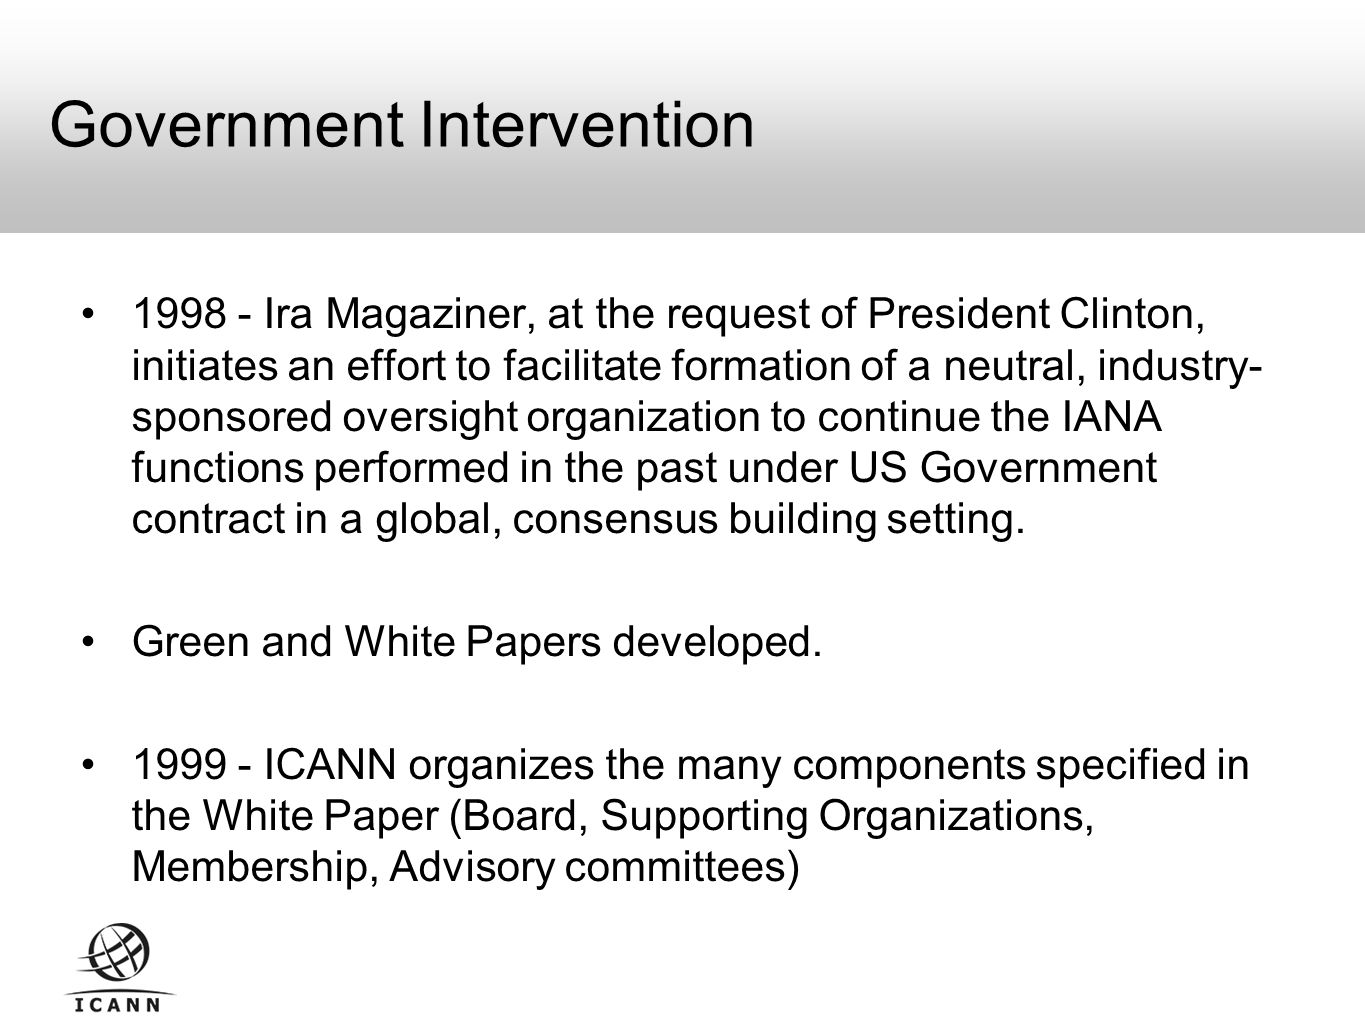 Government Intervention Ira Magaziner, at the request of President Clinton, initiates an effort to facilitate formation of a neutral, industry- sponsored oversight organization to continue the IANA functions performed in the past under US Government contract in a global, consensus building setting.